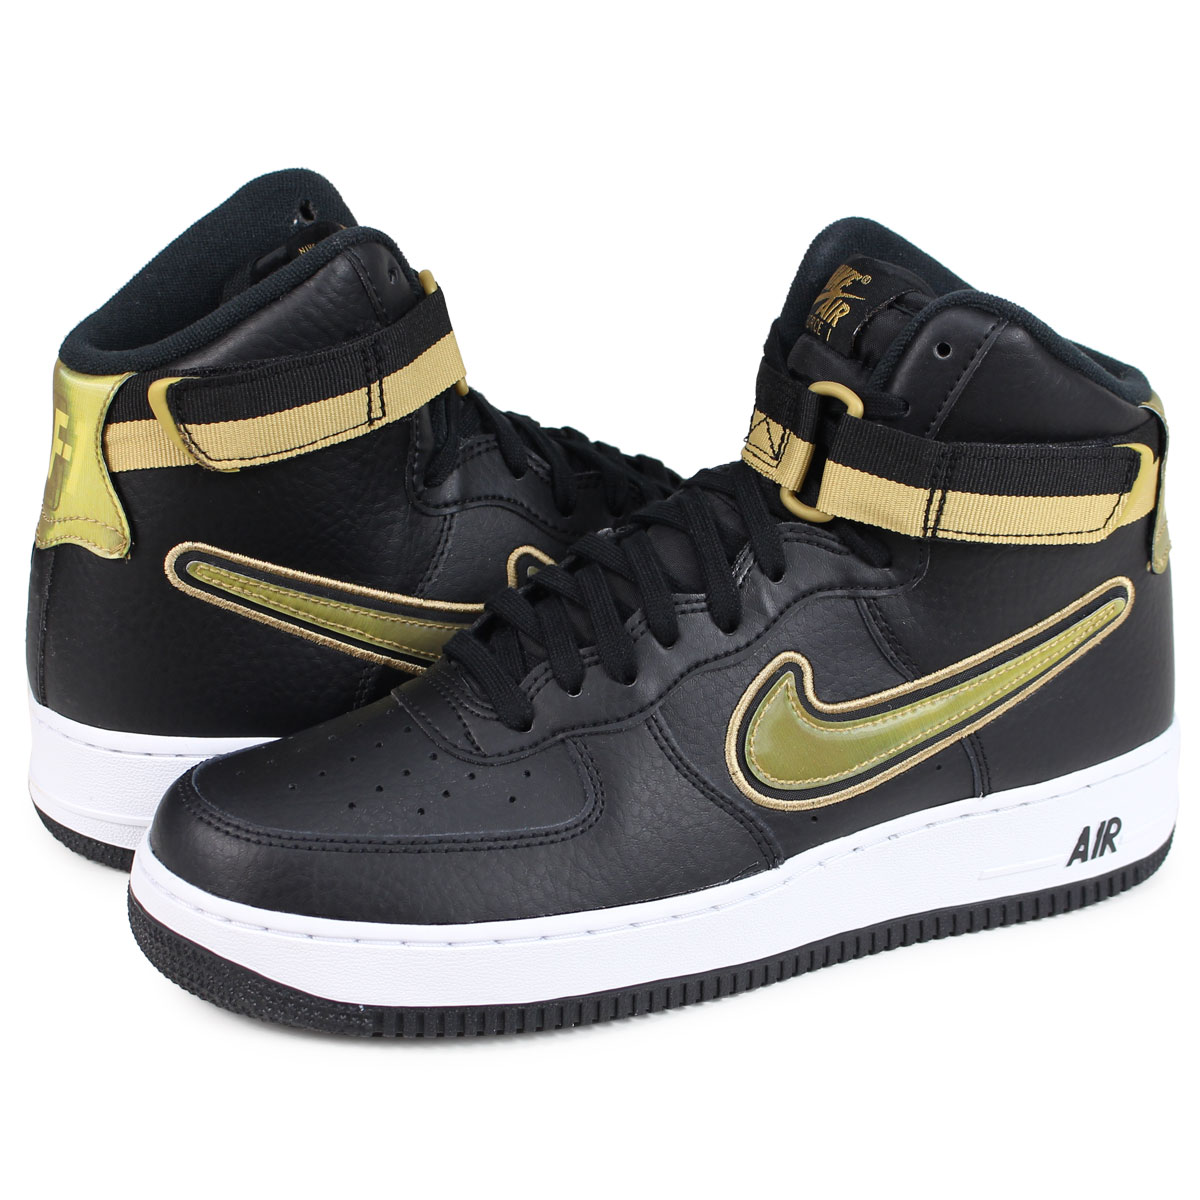 quality design a2c6f 25052  brand NIKE getting high popularity from sneakers freak